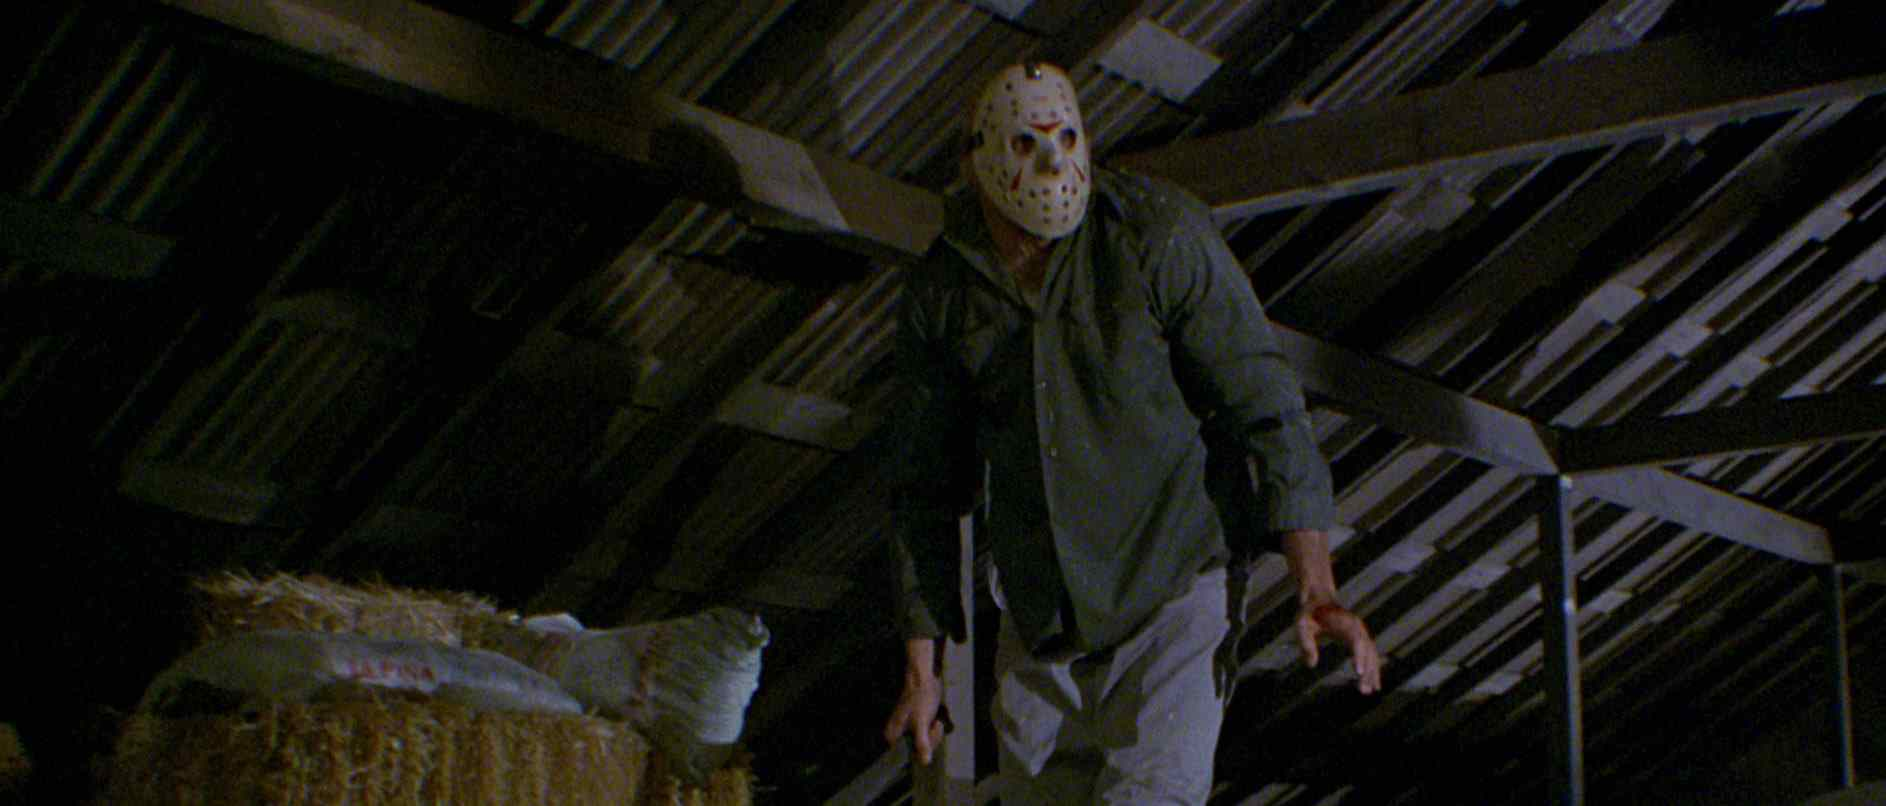 Jason in Friday the 13th Part III